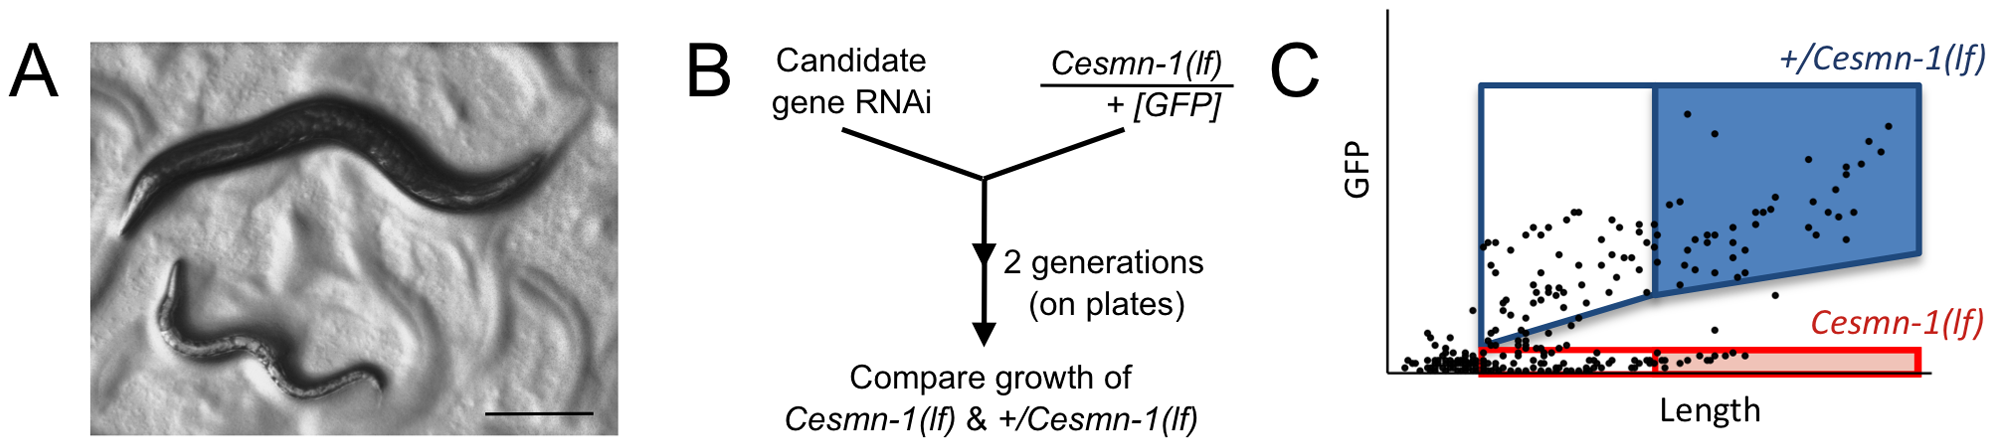 Survival and average length of <i>Cesmn-1(lf)</i> animals is decreased.